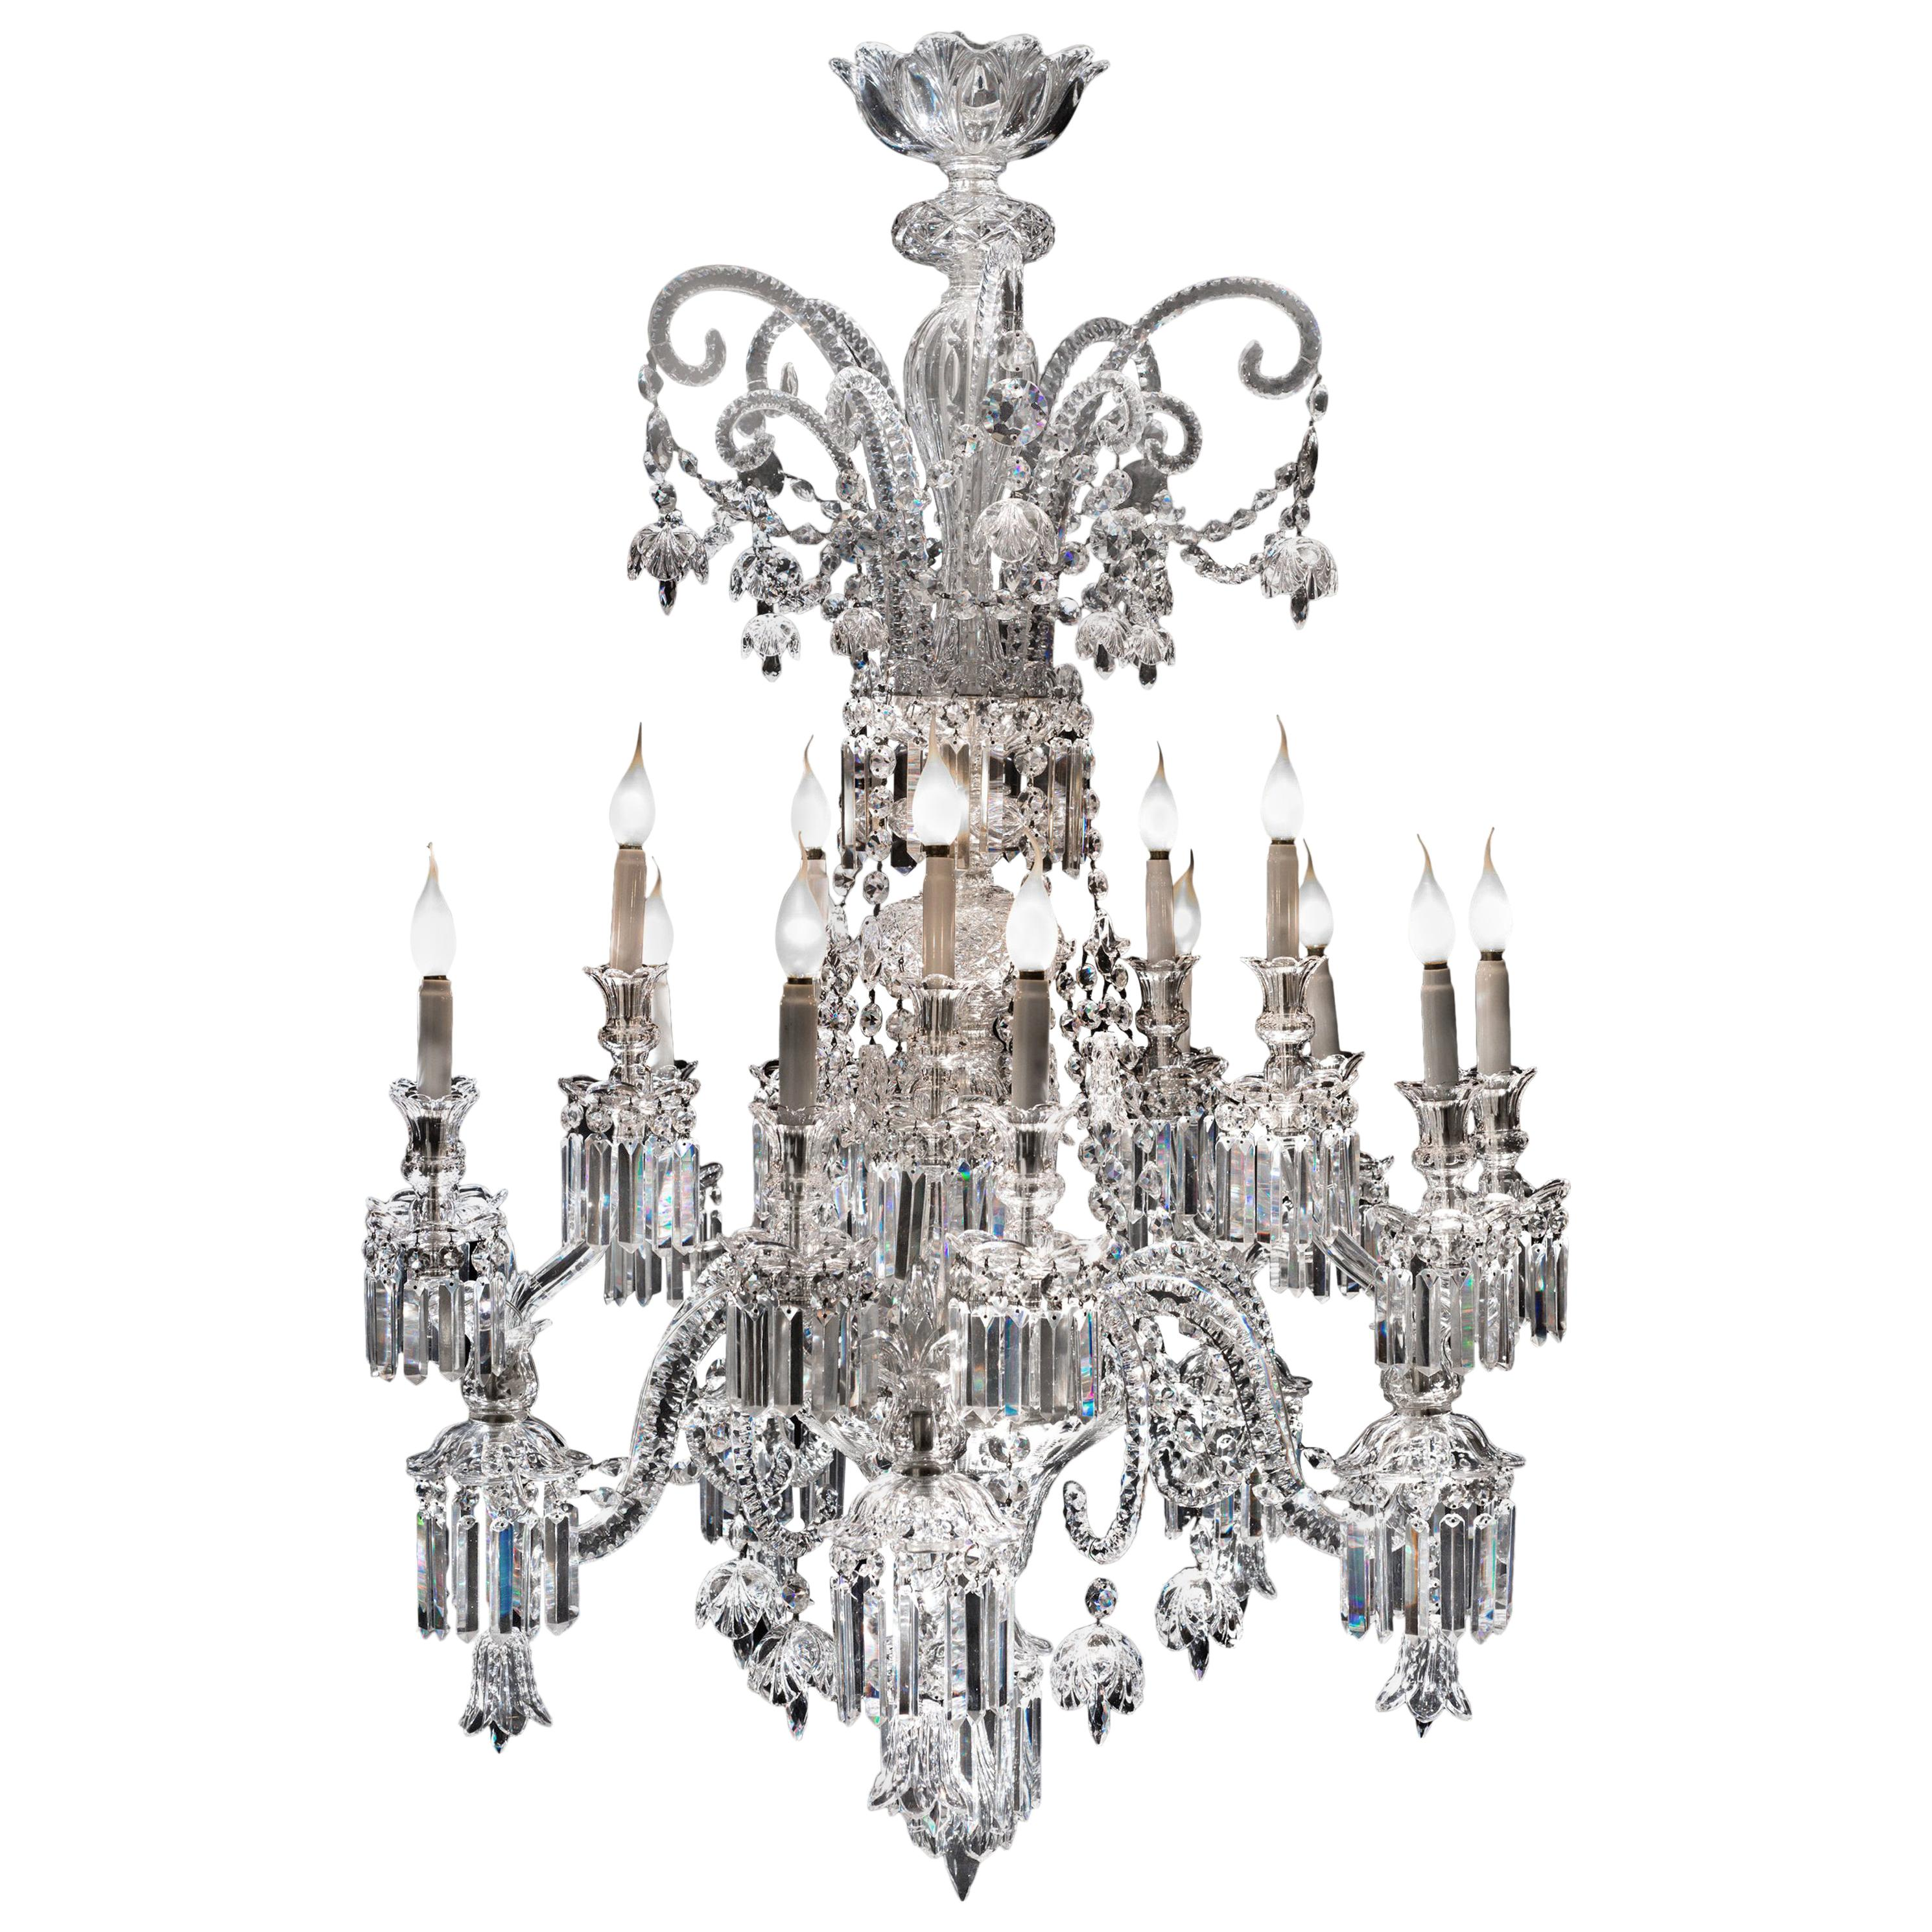 Baccarat Crystal Exceptional Chandelier, France, Early 19th Century